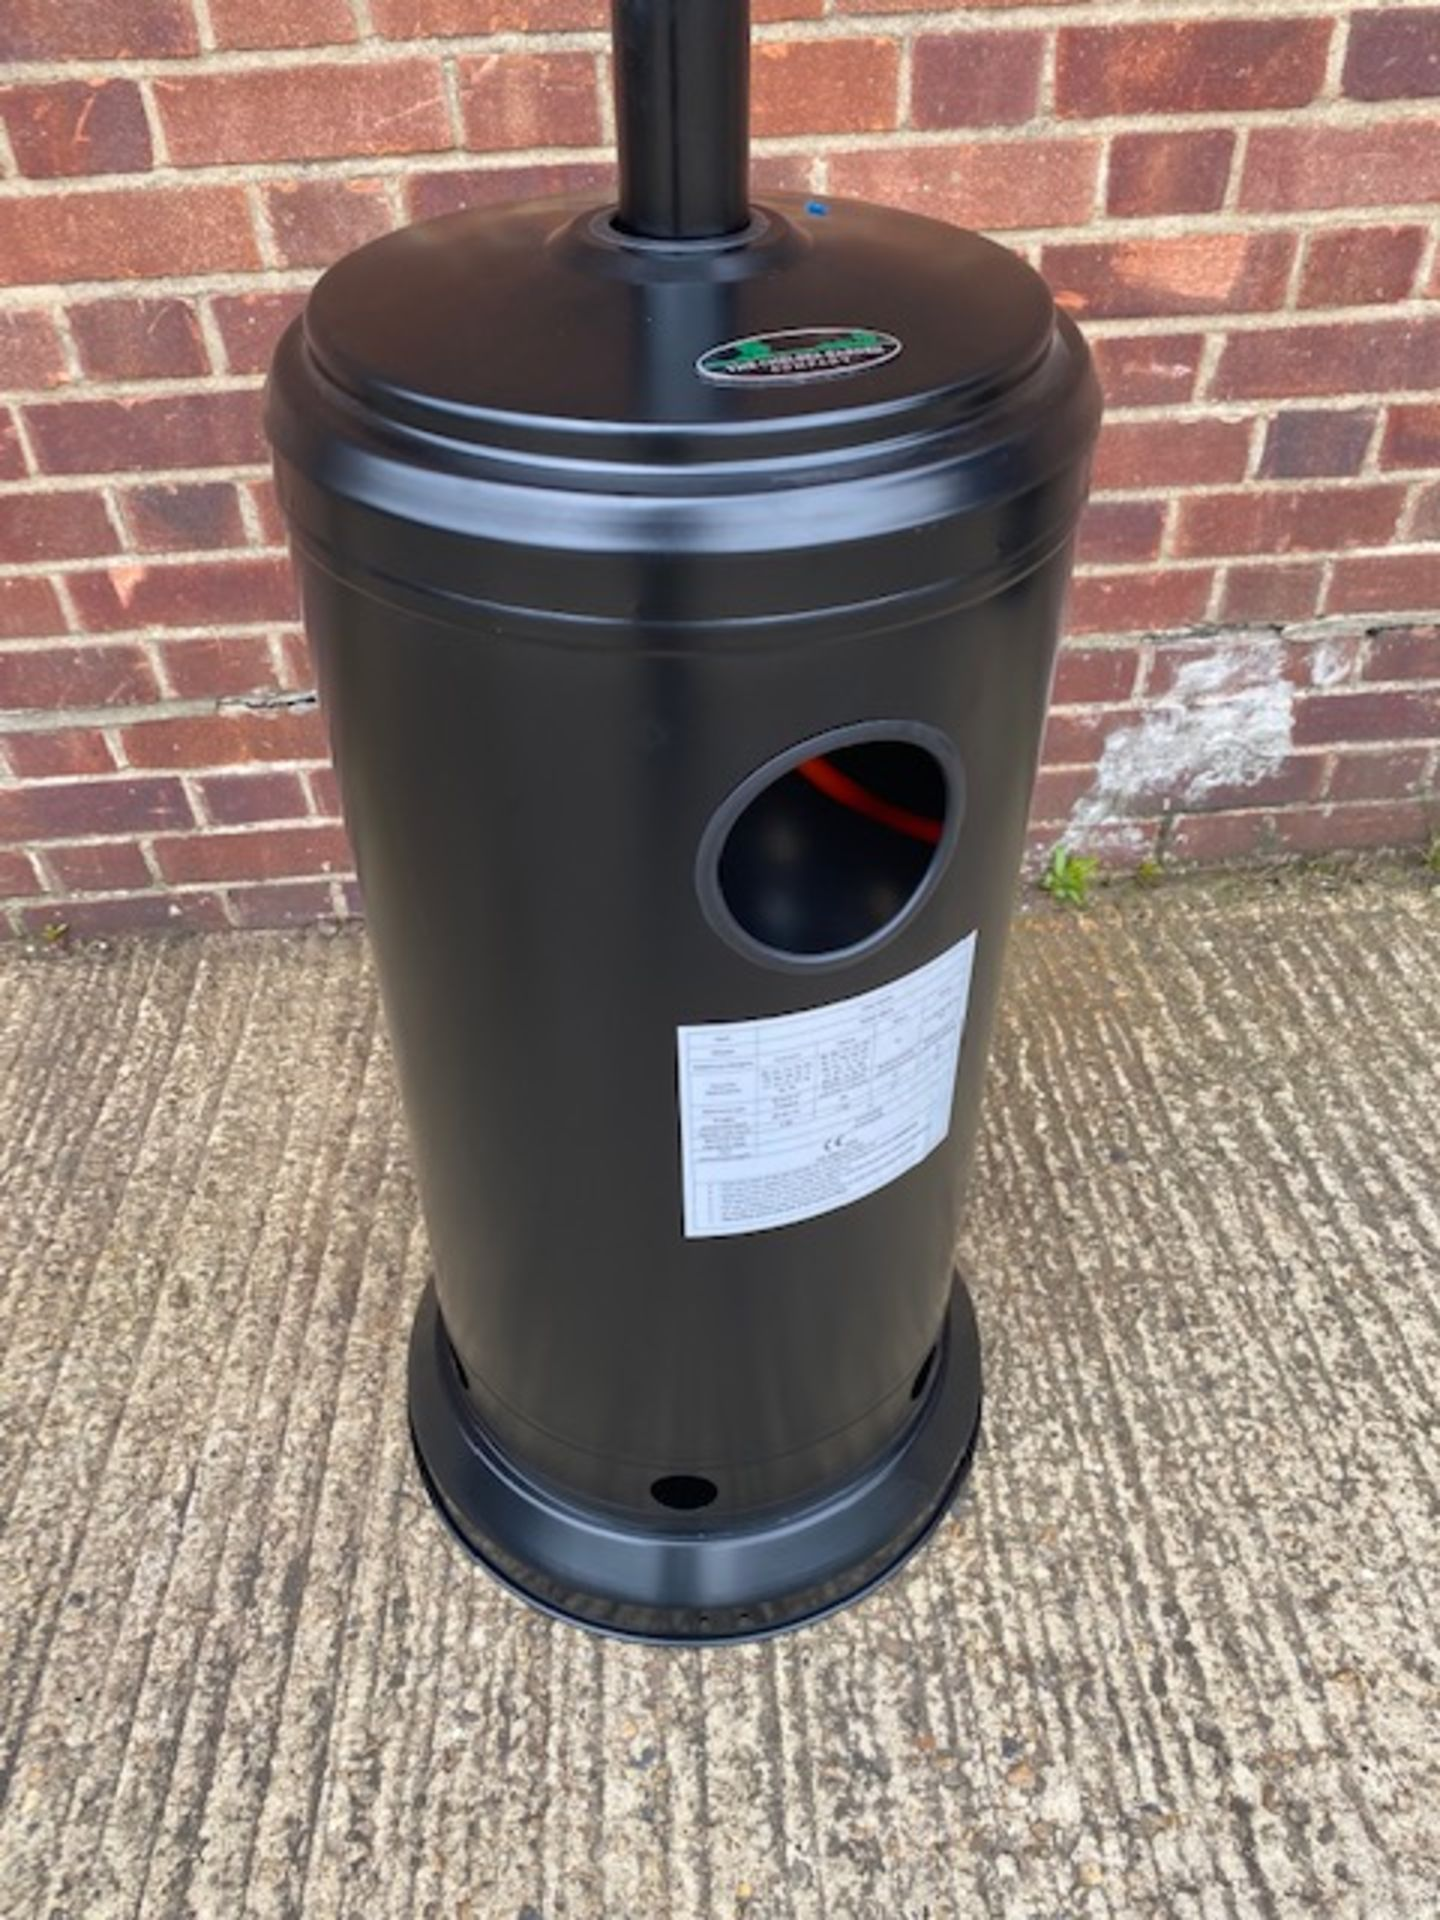 + VAT Brand New Chelsea Garden Company Garden Patio Heater With Cover - Item Is Available From - Image 8 of 9